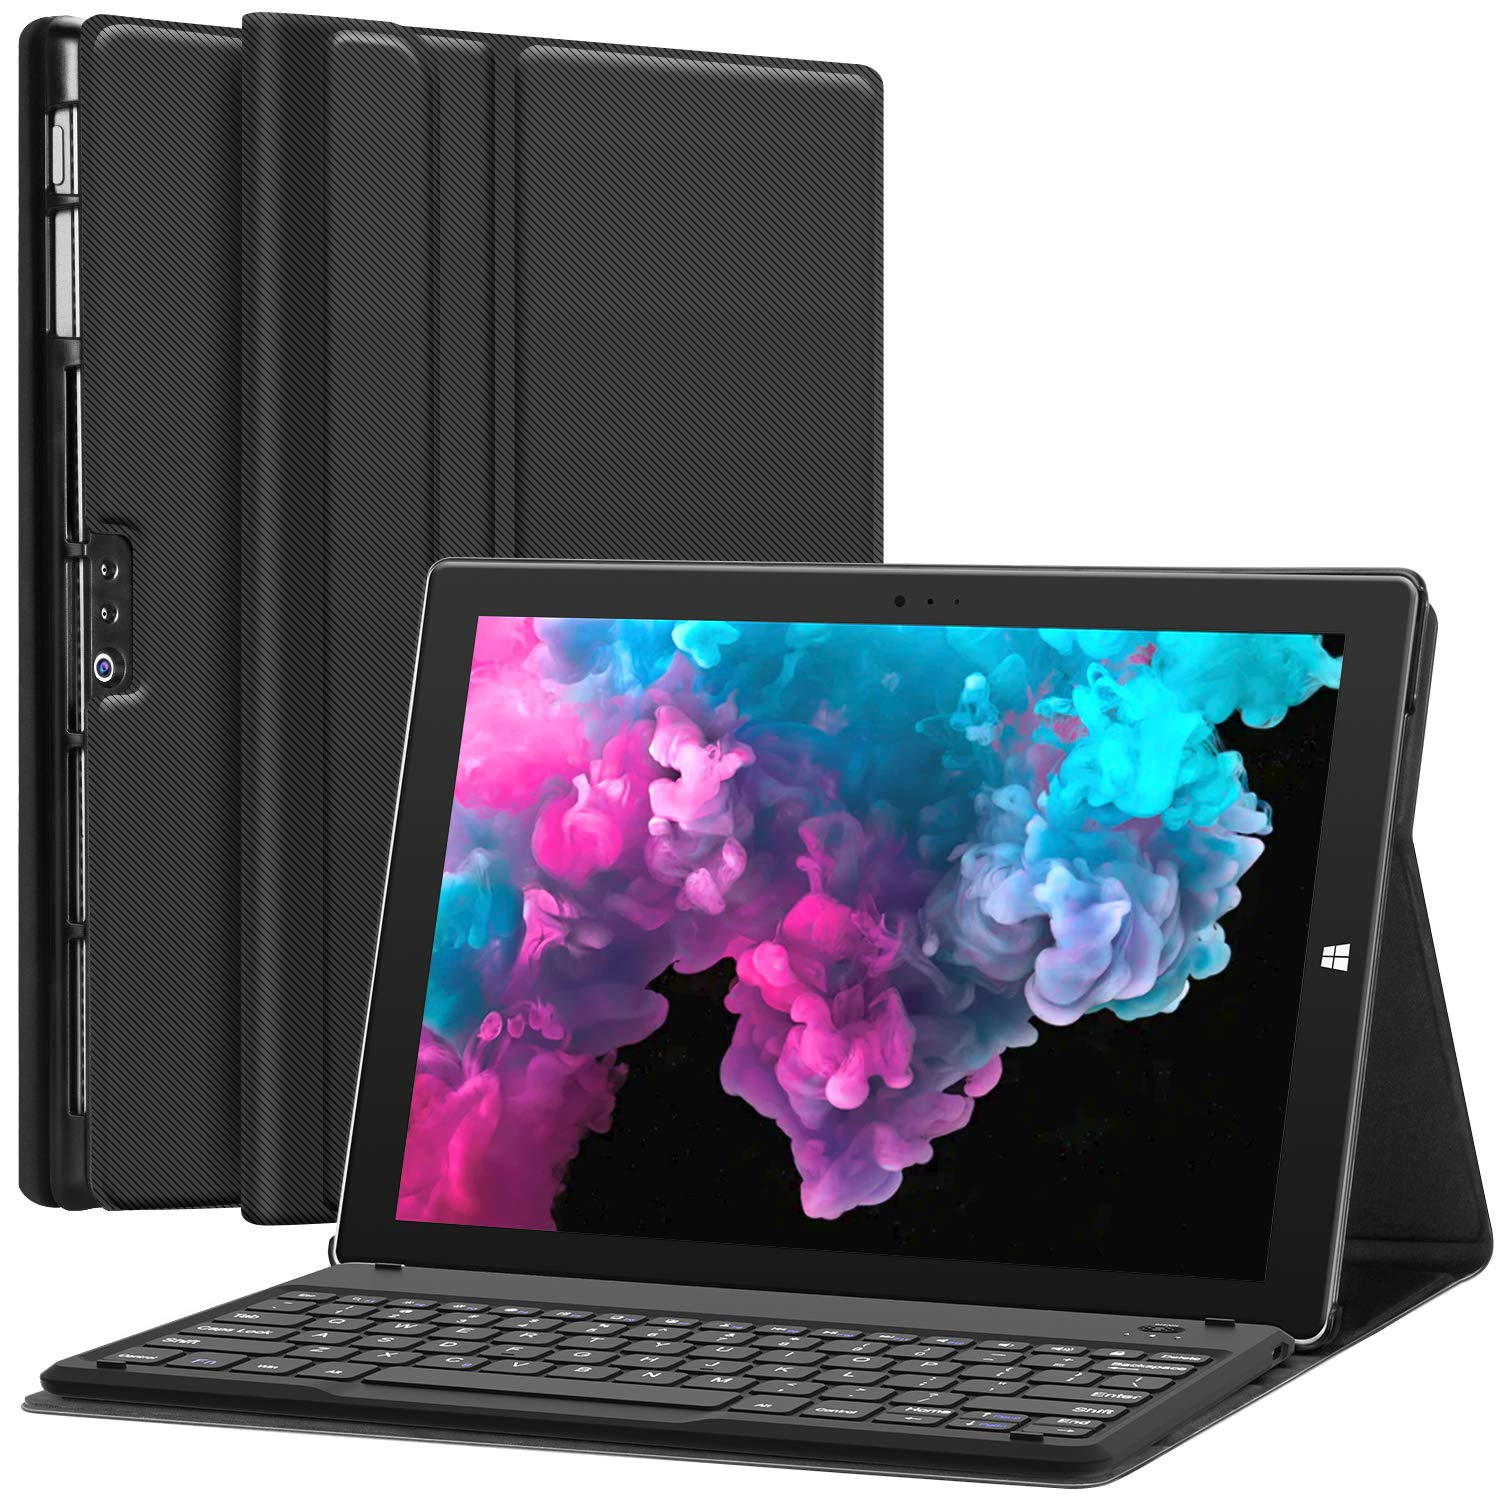 Microsoft Surface Pro 6 Case with Keyboard for Microsoft Surface Pro 6/ Surface Pro 5 2017/ Surface Pro 4 12.3 inch Tablet - Folio Stand Case - Detachable Wireless Type Cover Keyboard - Black